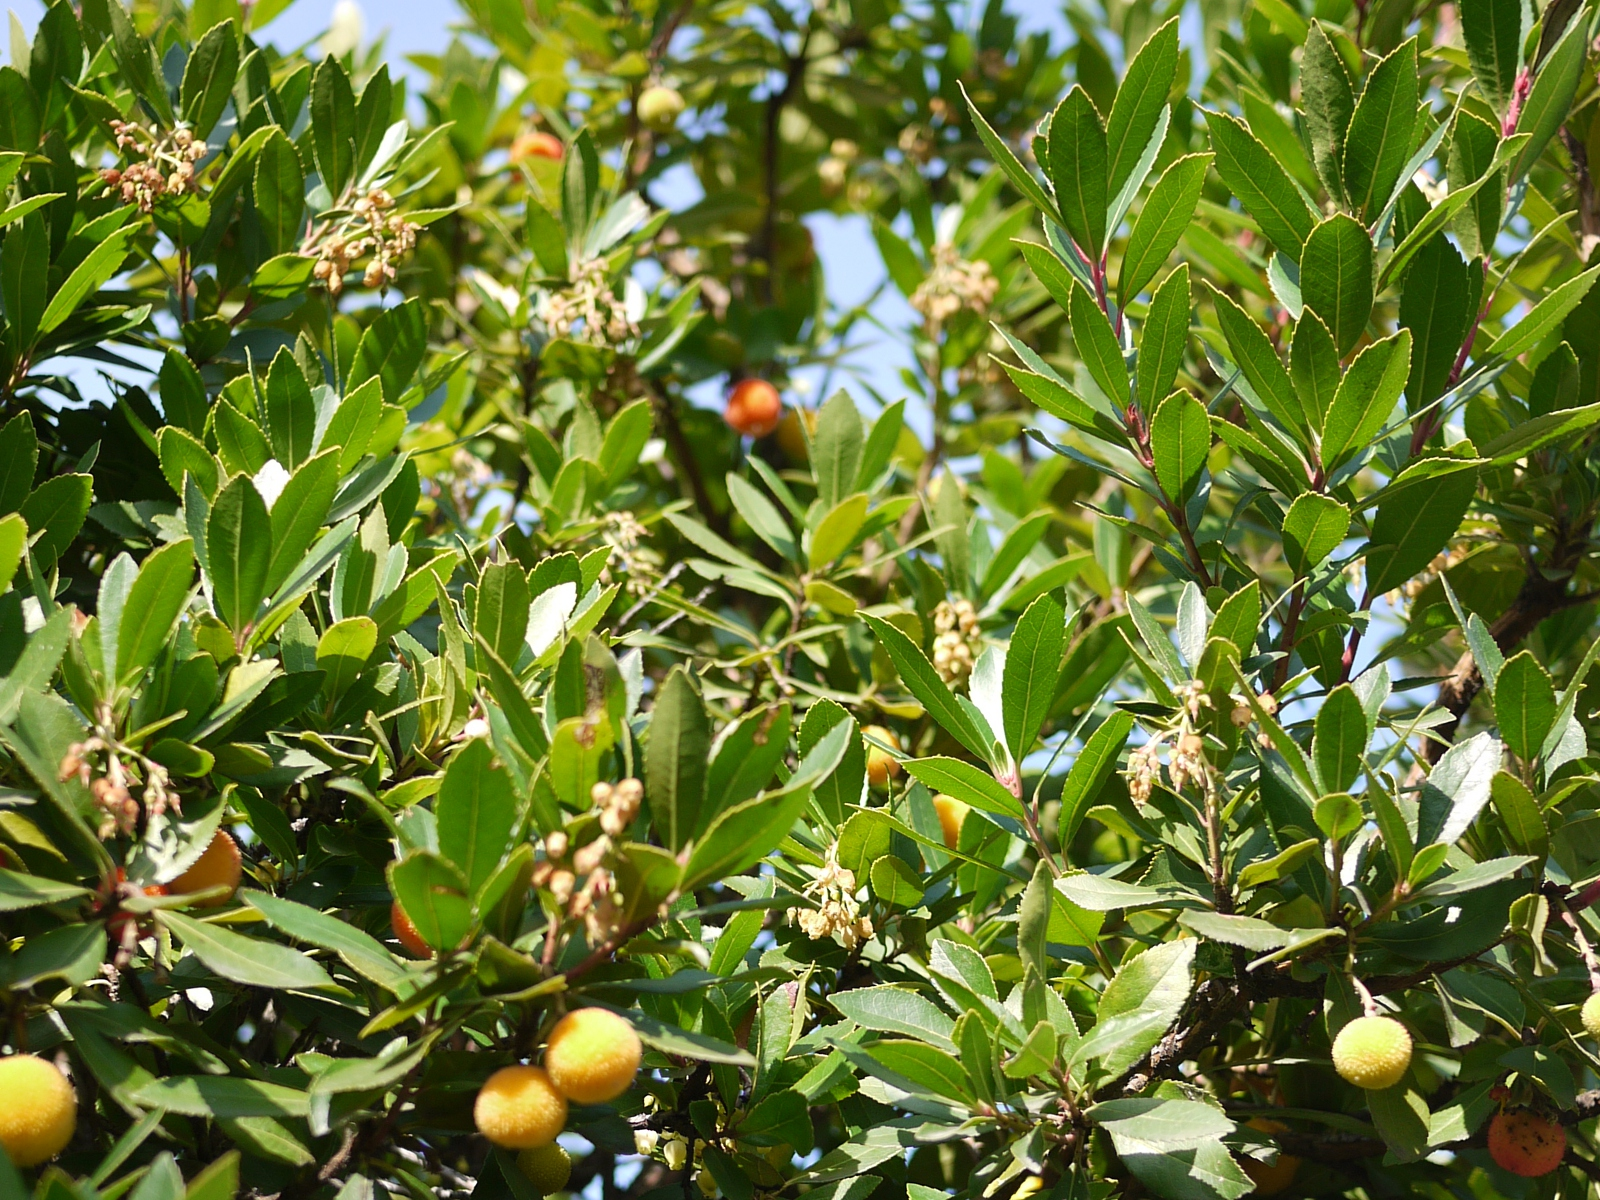 Fruit Tree Flowers Part - 16: Flowers And Fruit Of European Strawberry Tree (Arbutus Unedo)